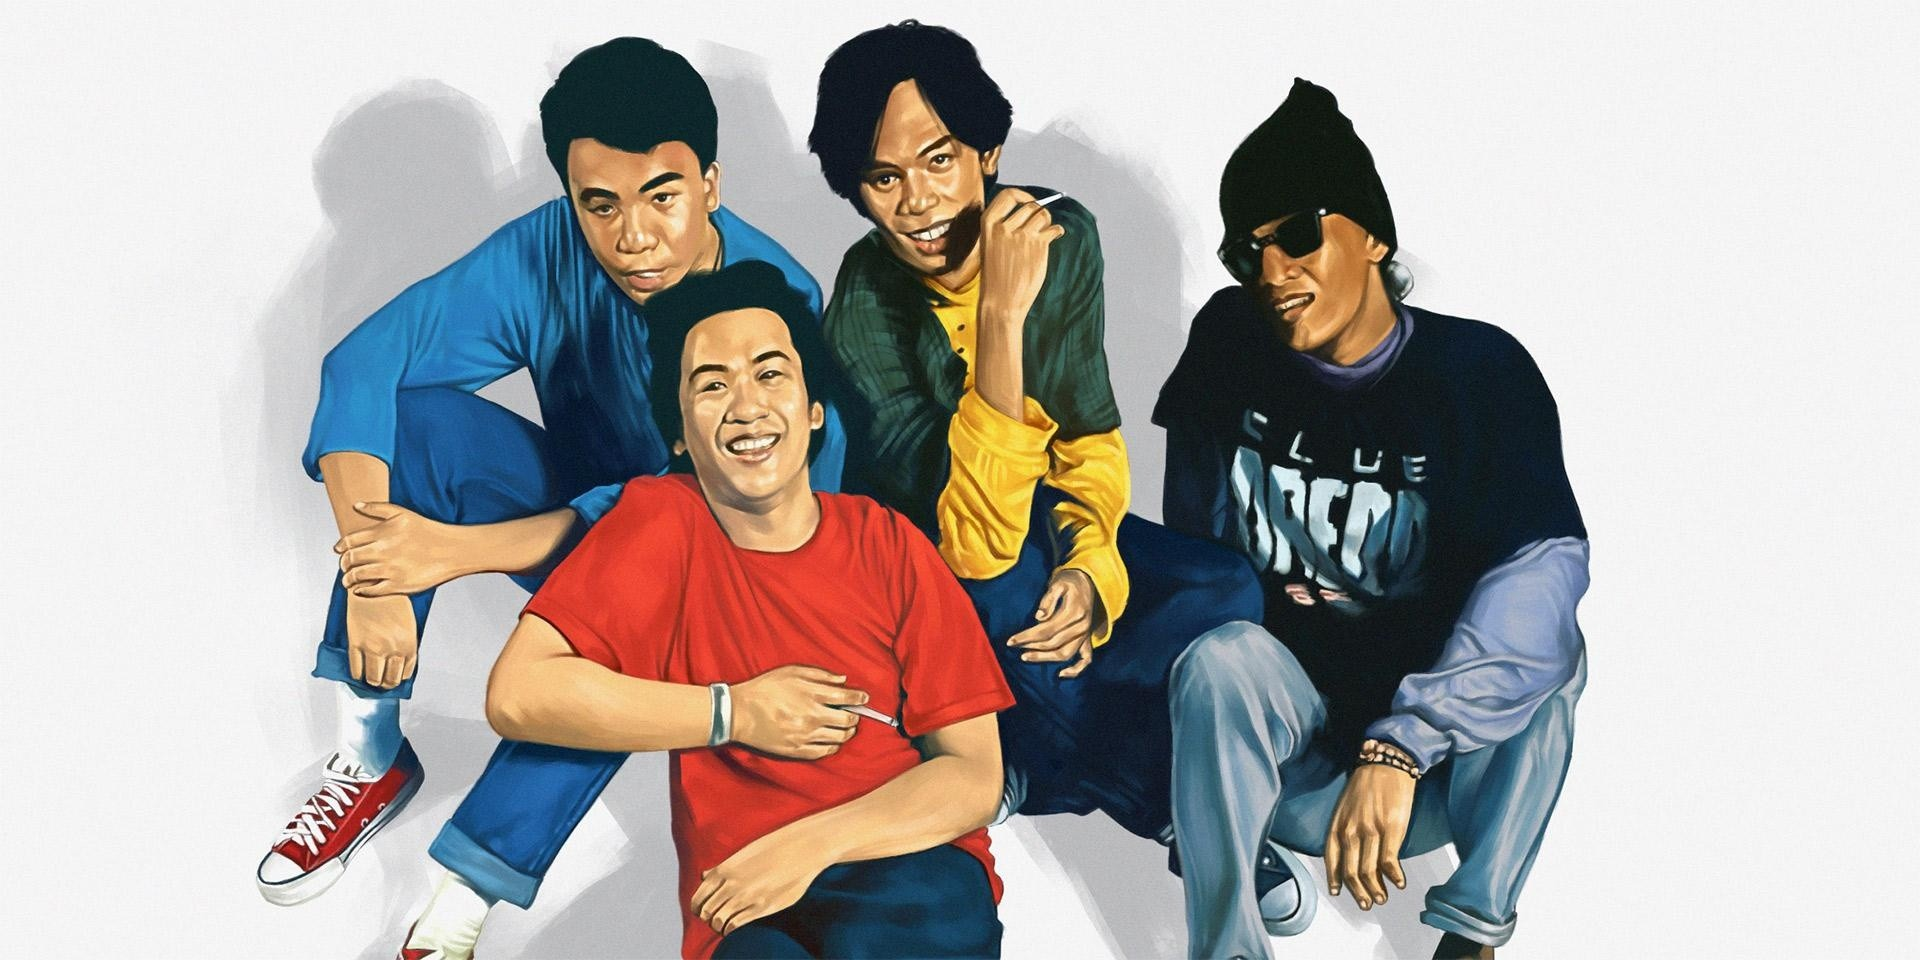 Offshore Music to release exclusive Eraserheads merch tonight